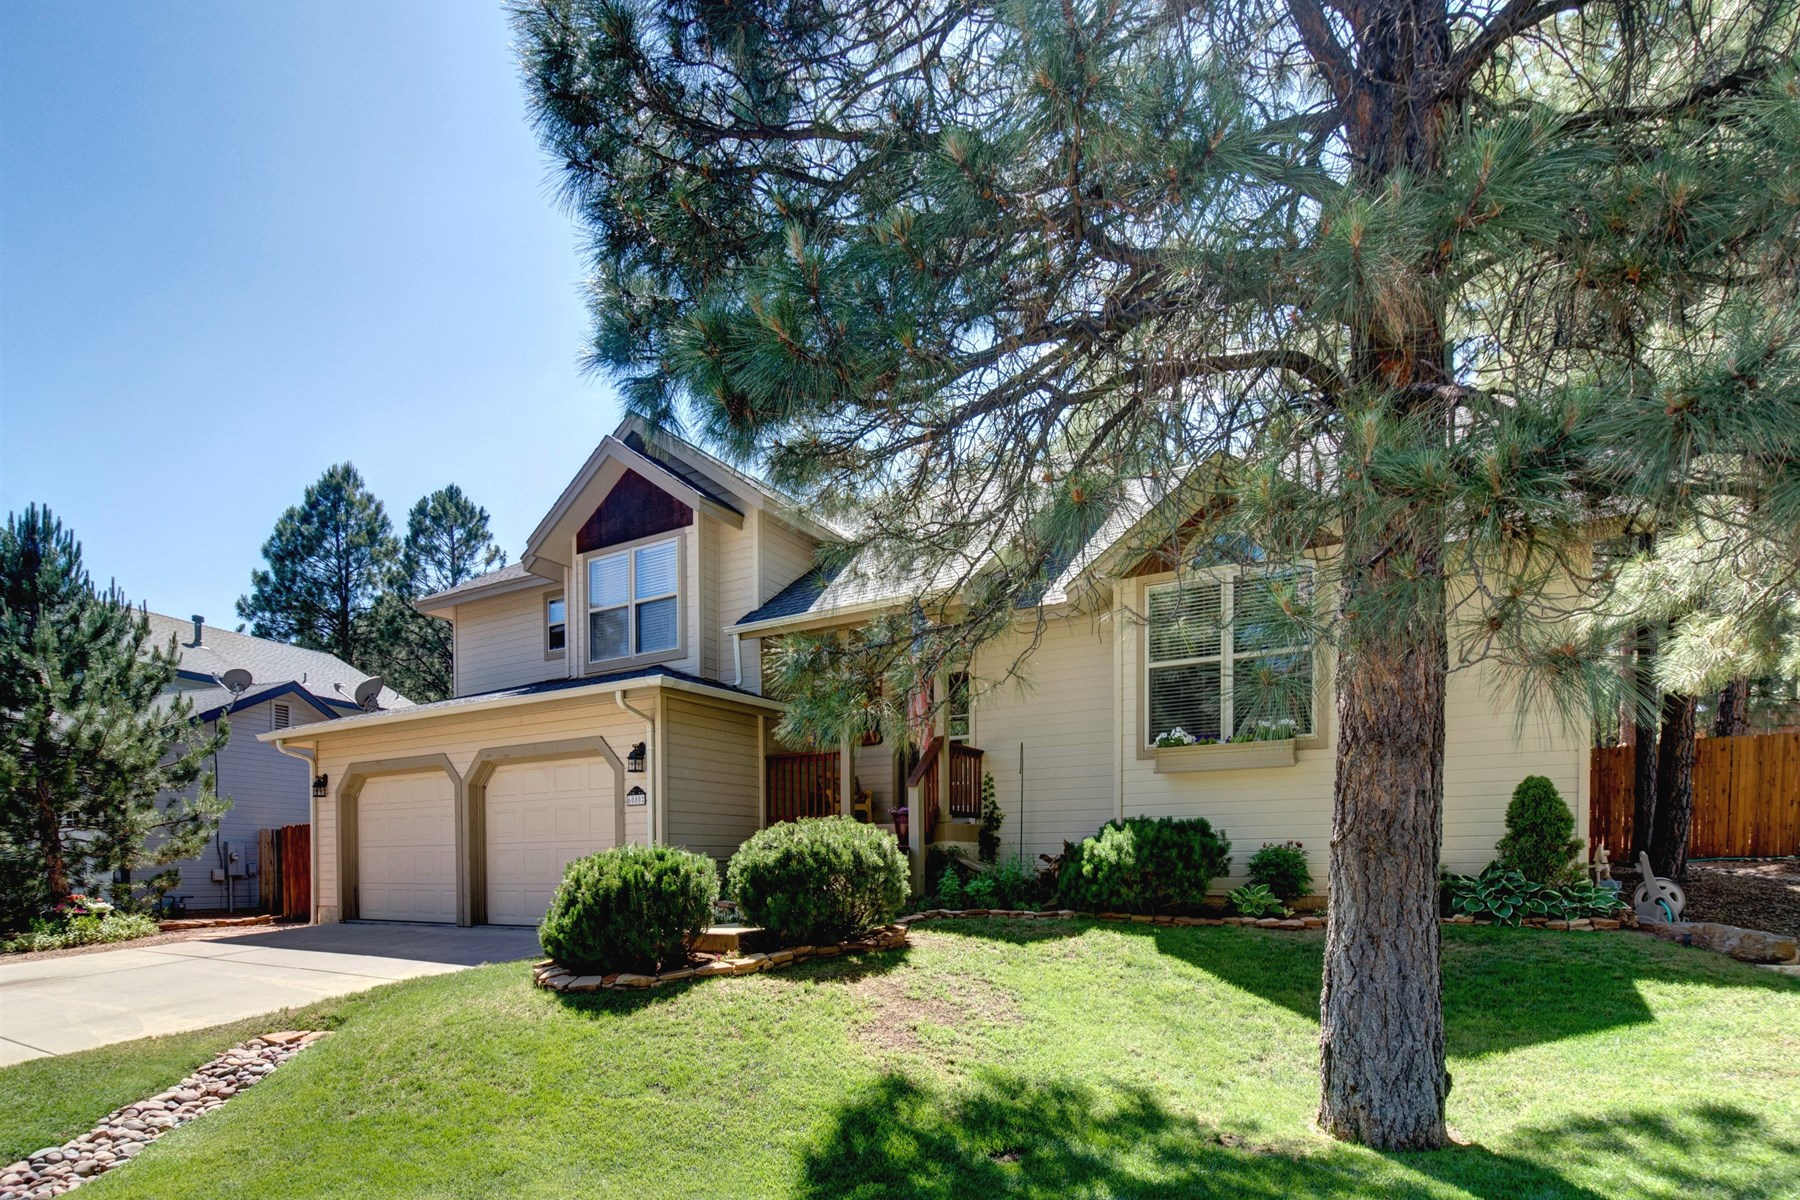 Single Family Home for Sale at Beautiful huge half acre lot in Walnut Canyon 6080 E Abineau Canyon Dr Flagstaff, Arizona, 86004 United States